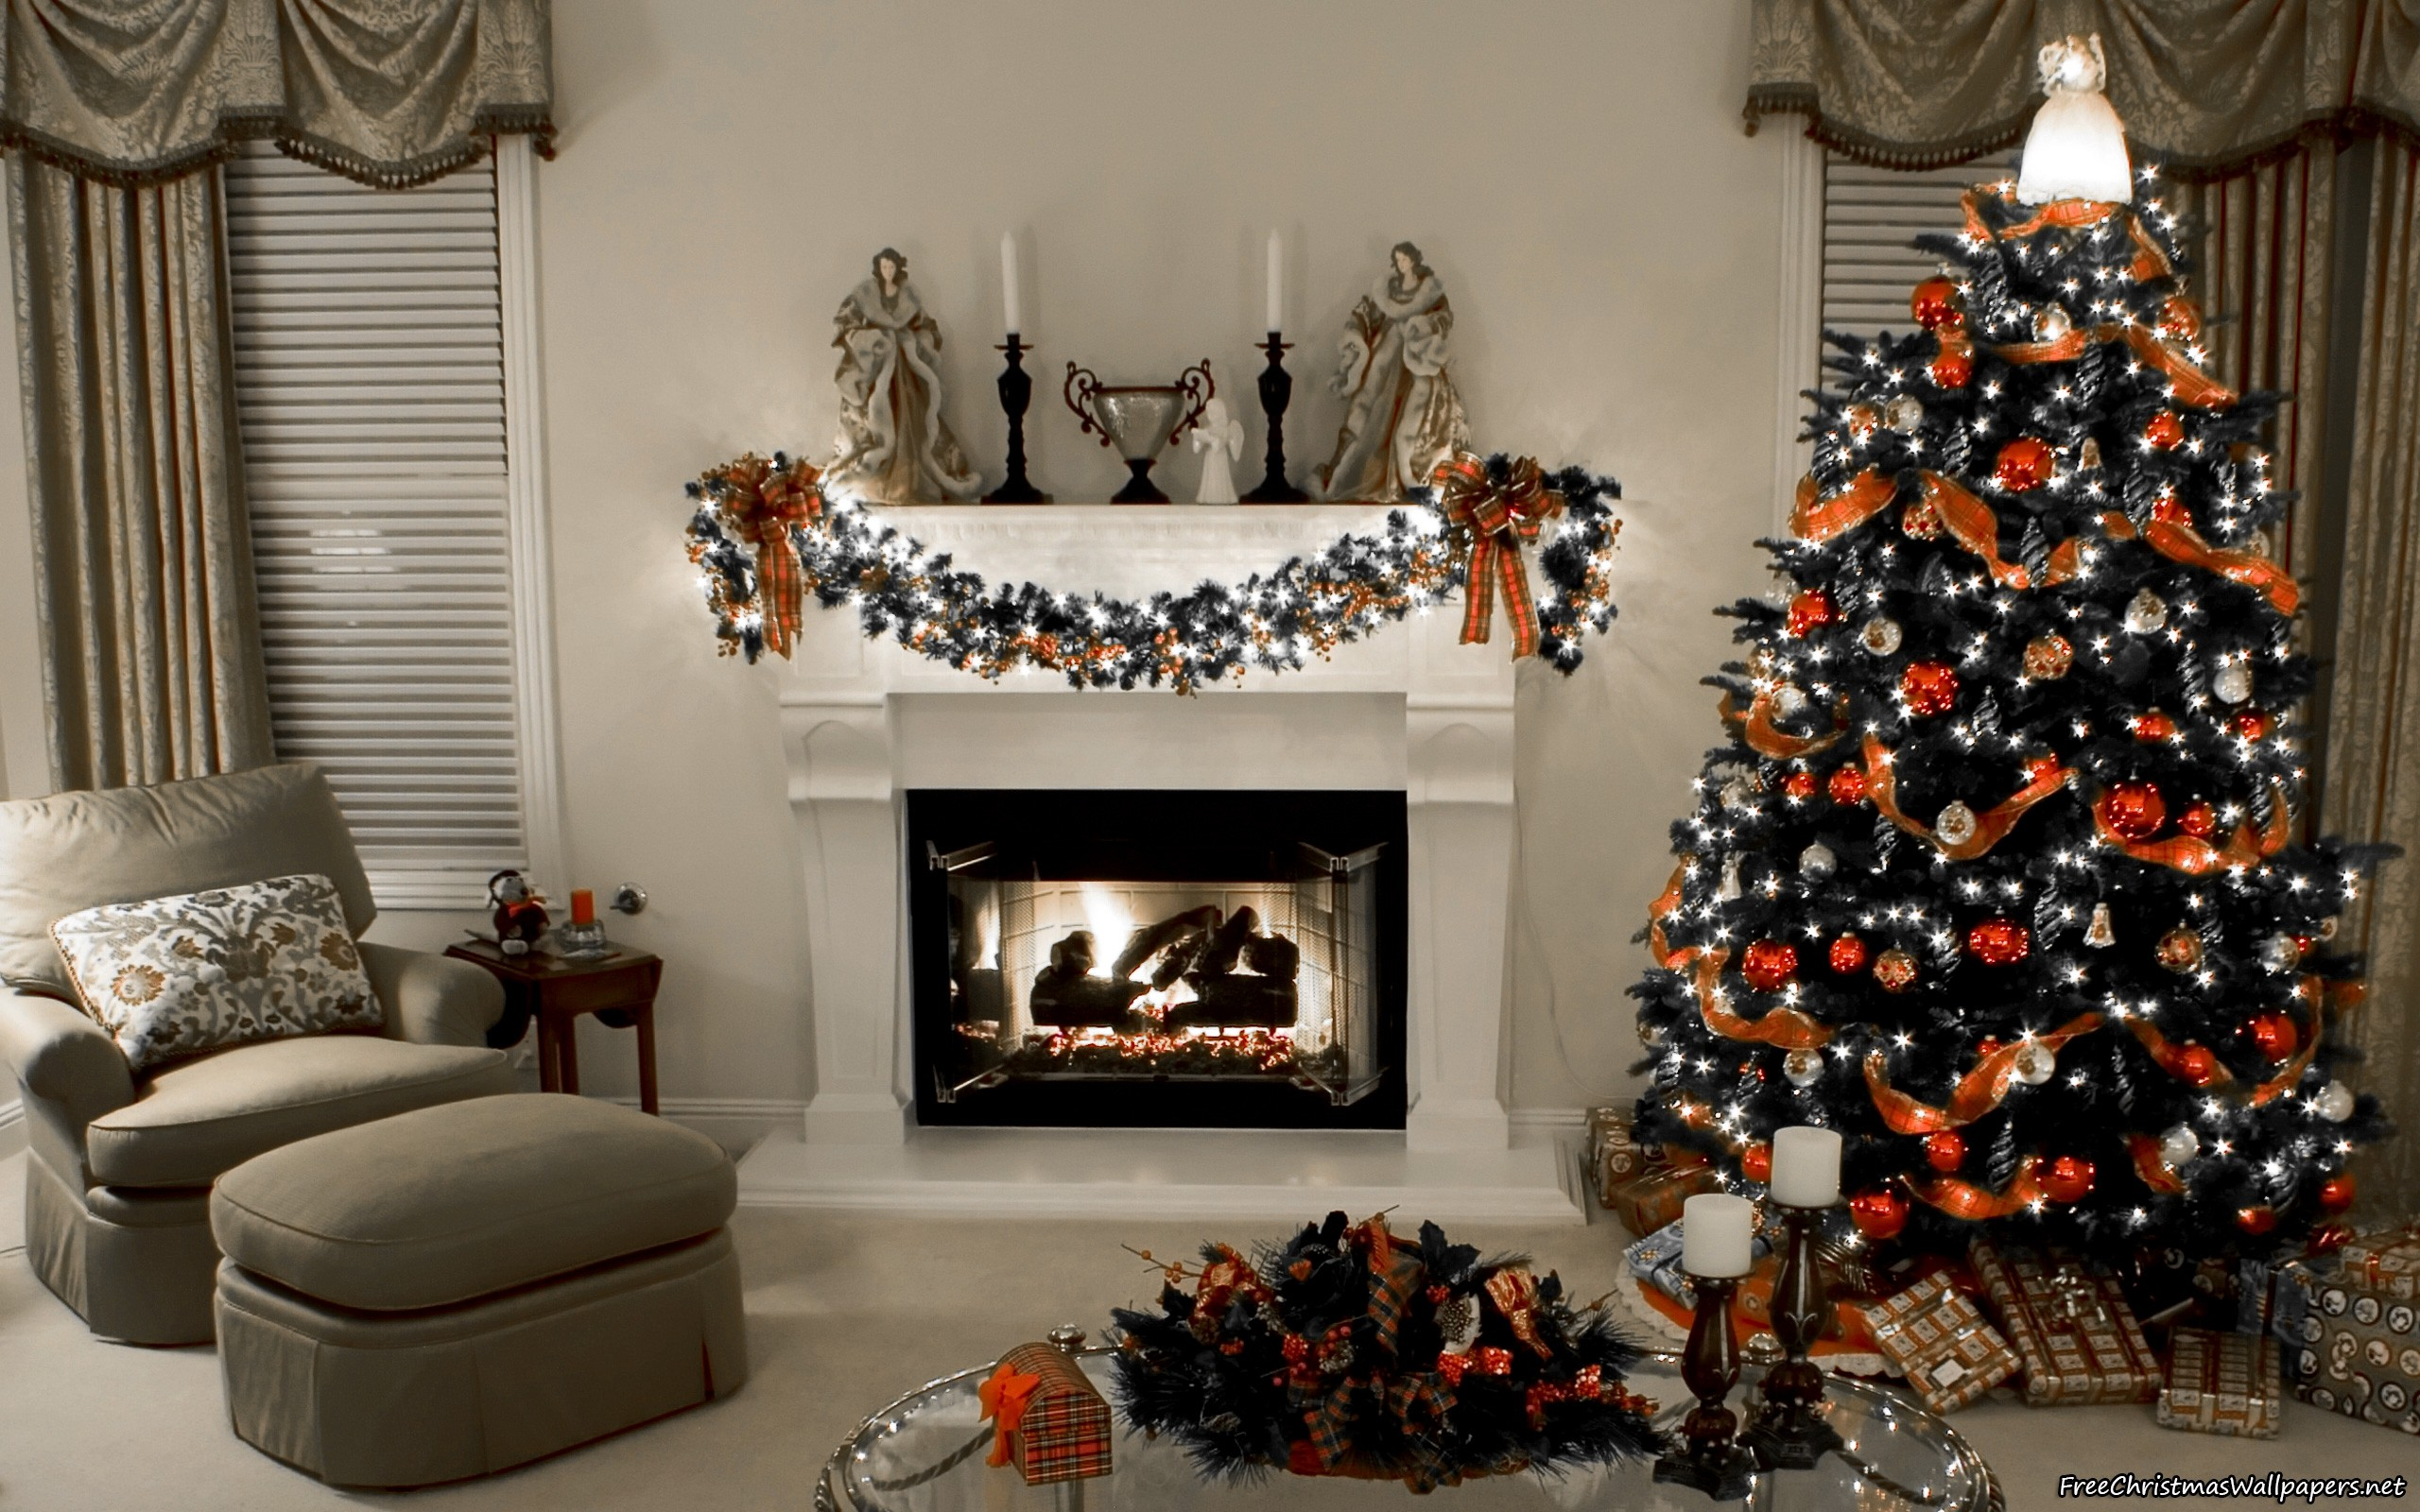 Decorated Christmas Fireplace And Tree Hd Wallpapers Hd Wallpapers